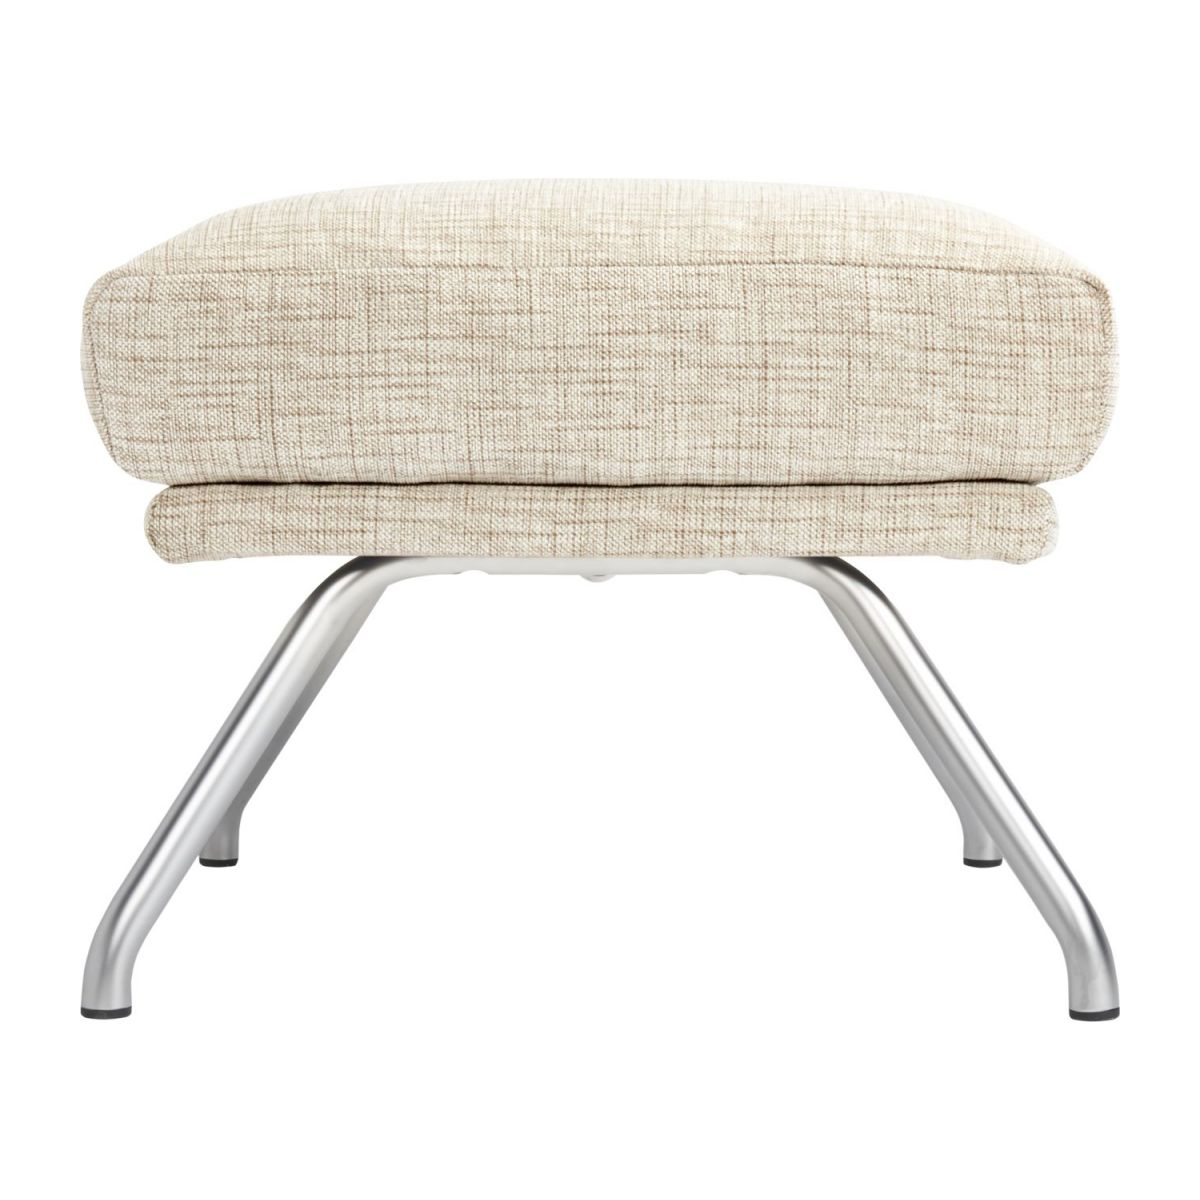 Footstool in Ancio fabric, nature with matt metal legs n°3